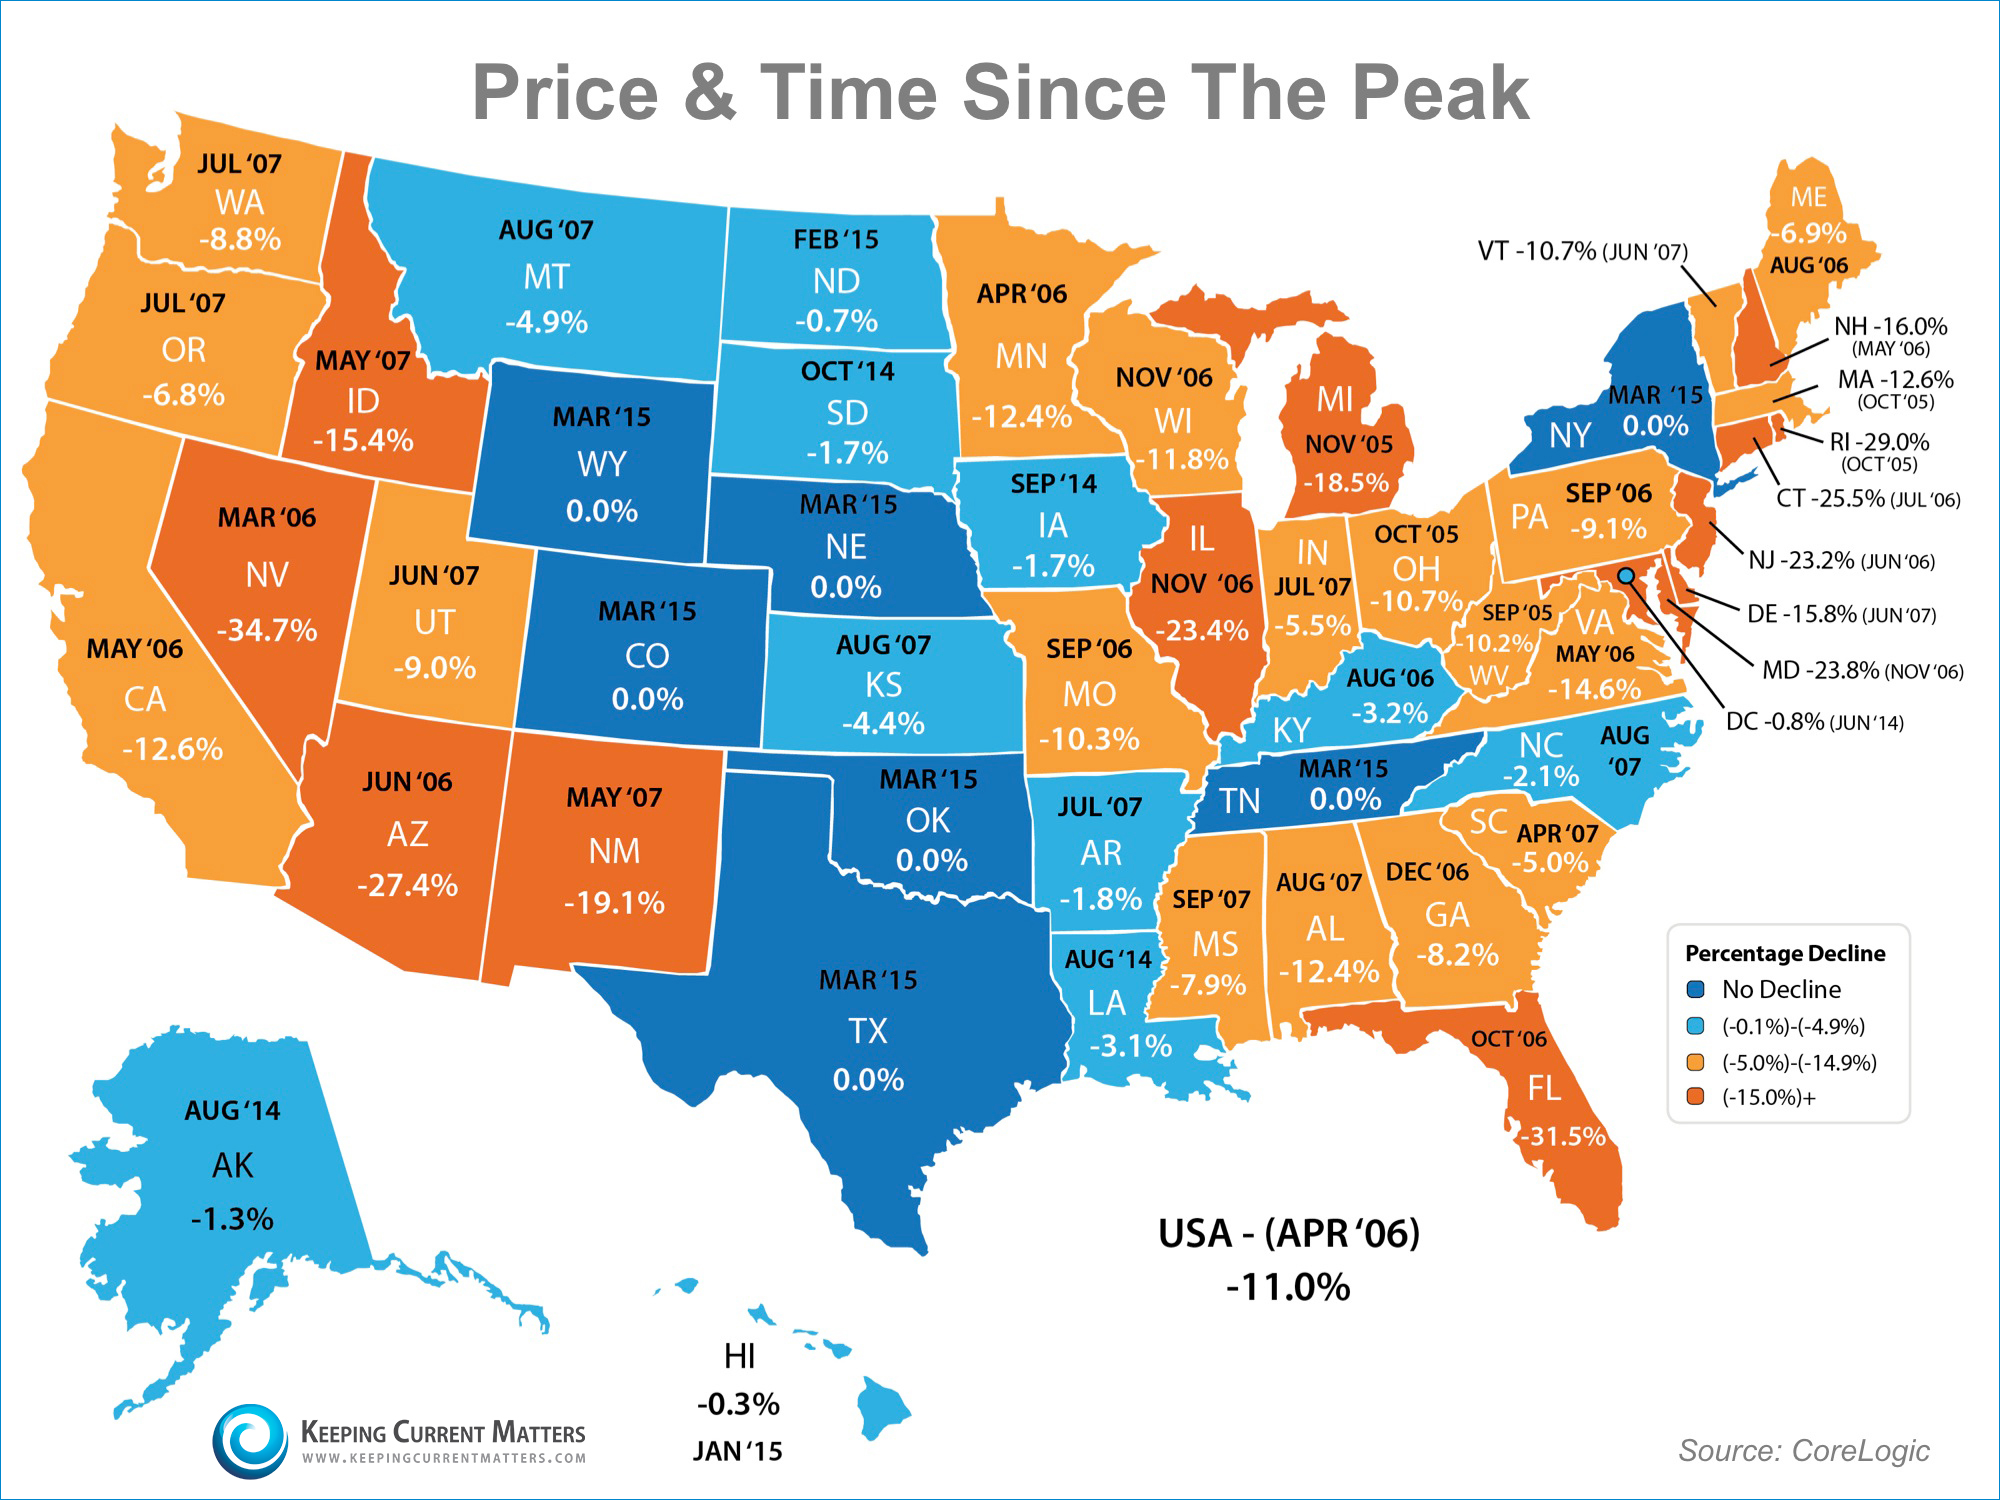 Price & Time Since Peak | Keeping Current Matters